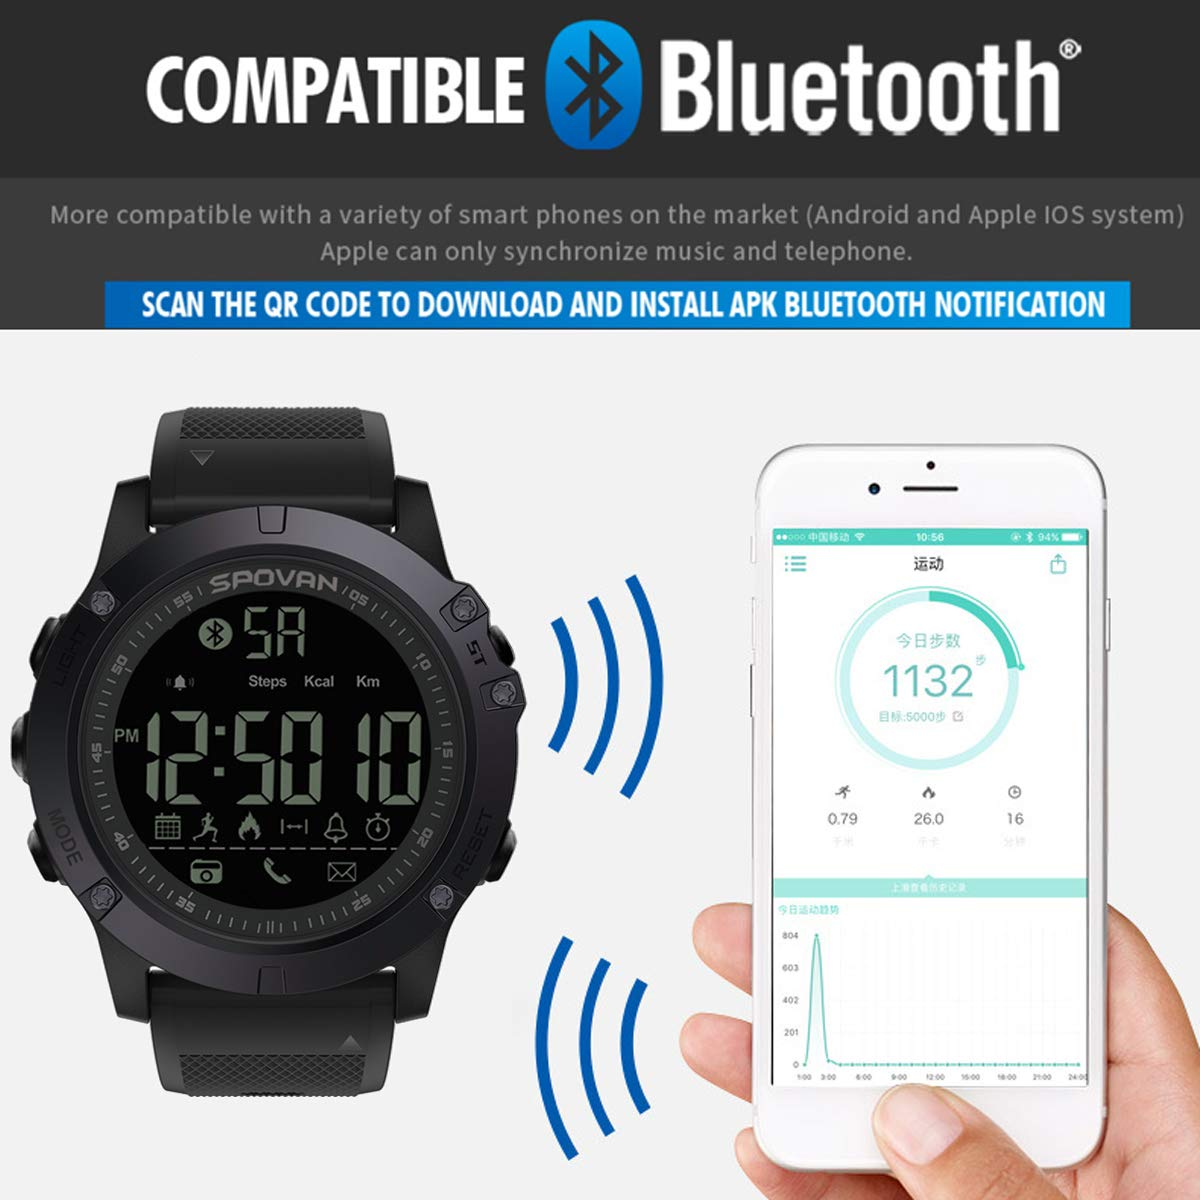 Amazon.com: Mens Sports Watch Bluetooth Activity Tracker Waterproof Digital Military Pedometer Calorie Counter Multifunction Wrist Smart Watch: Watches